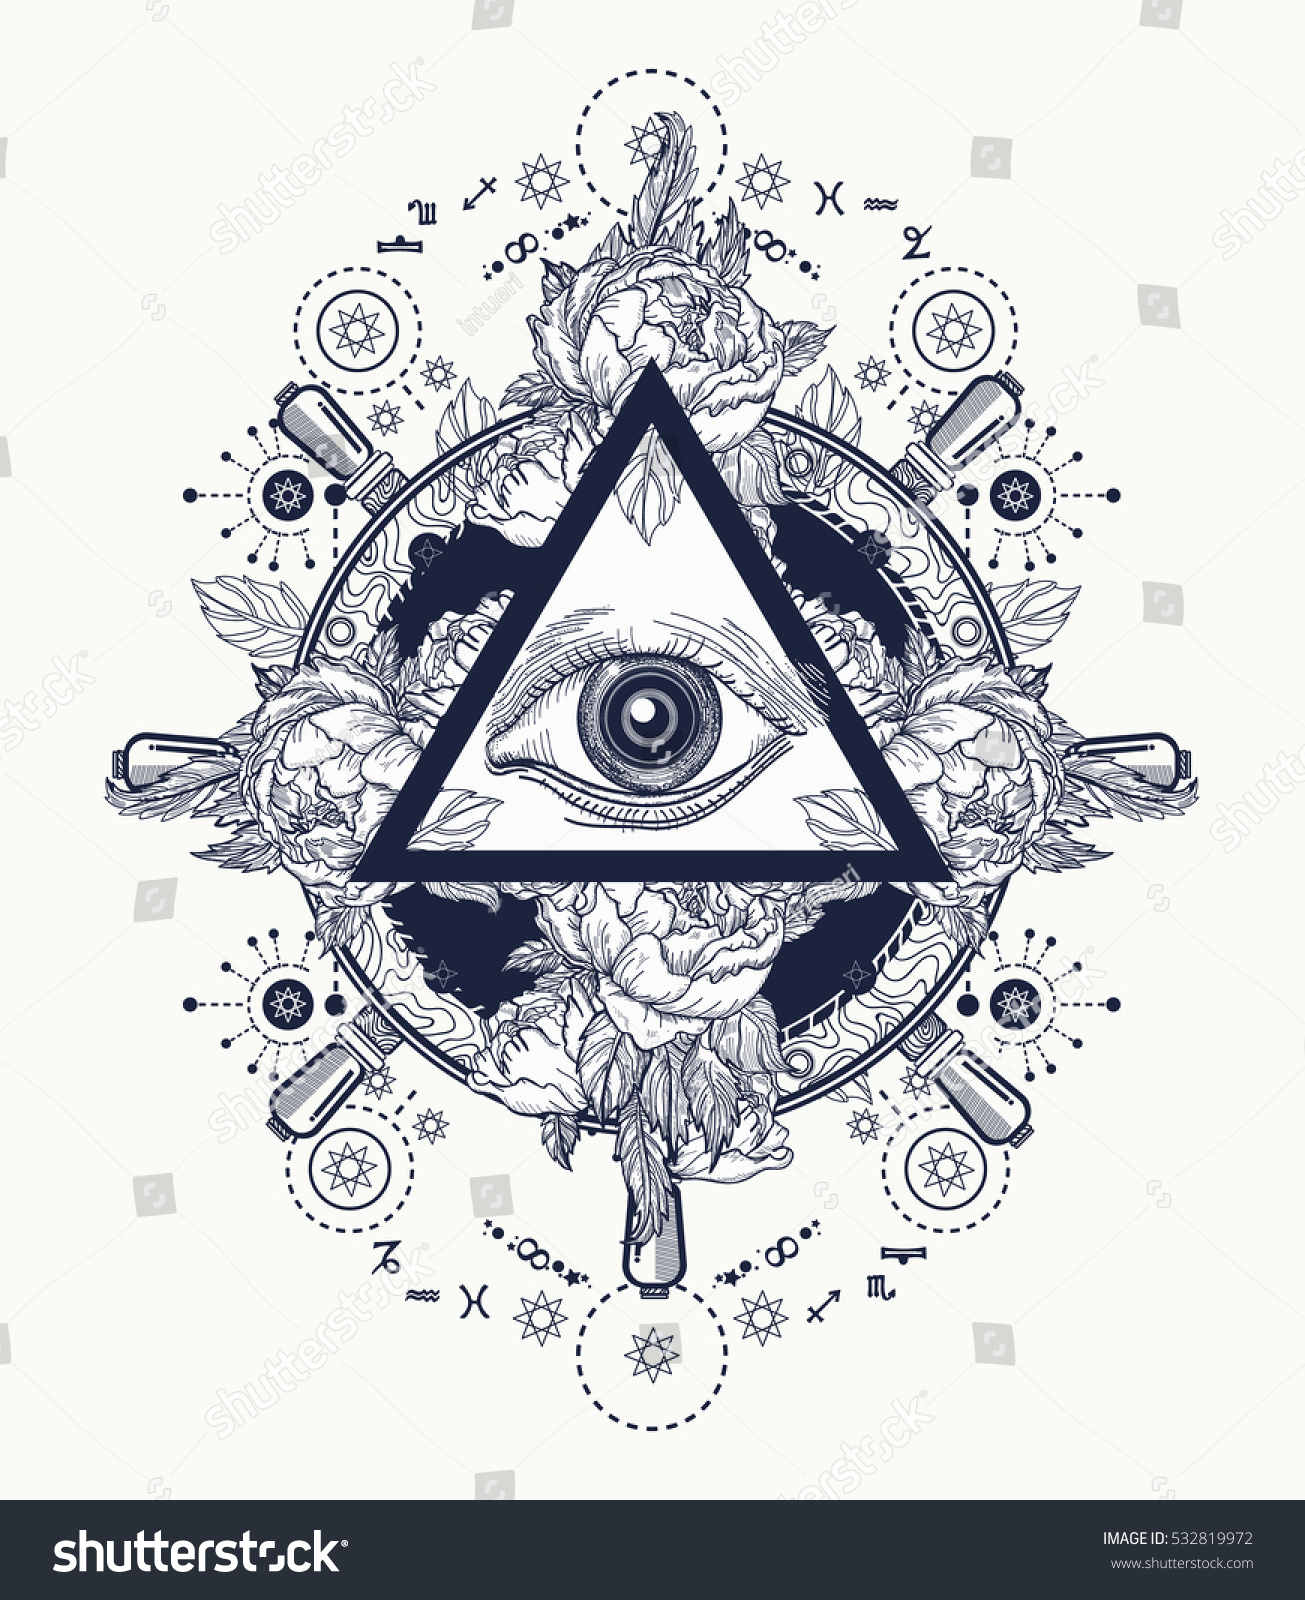 All seeing eye pyramid tattoo art stock vector 532819972 for Eye tattoo art